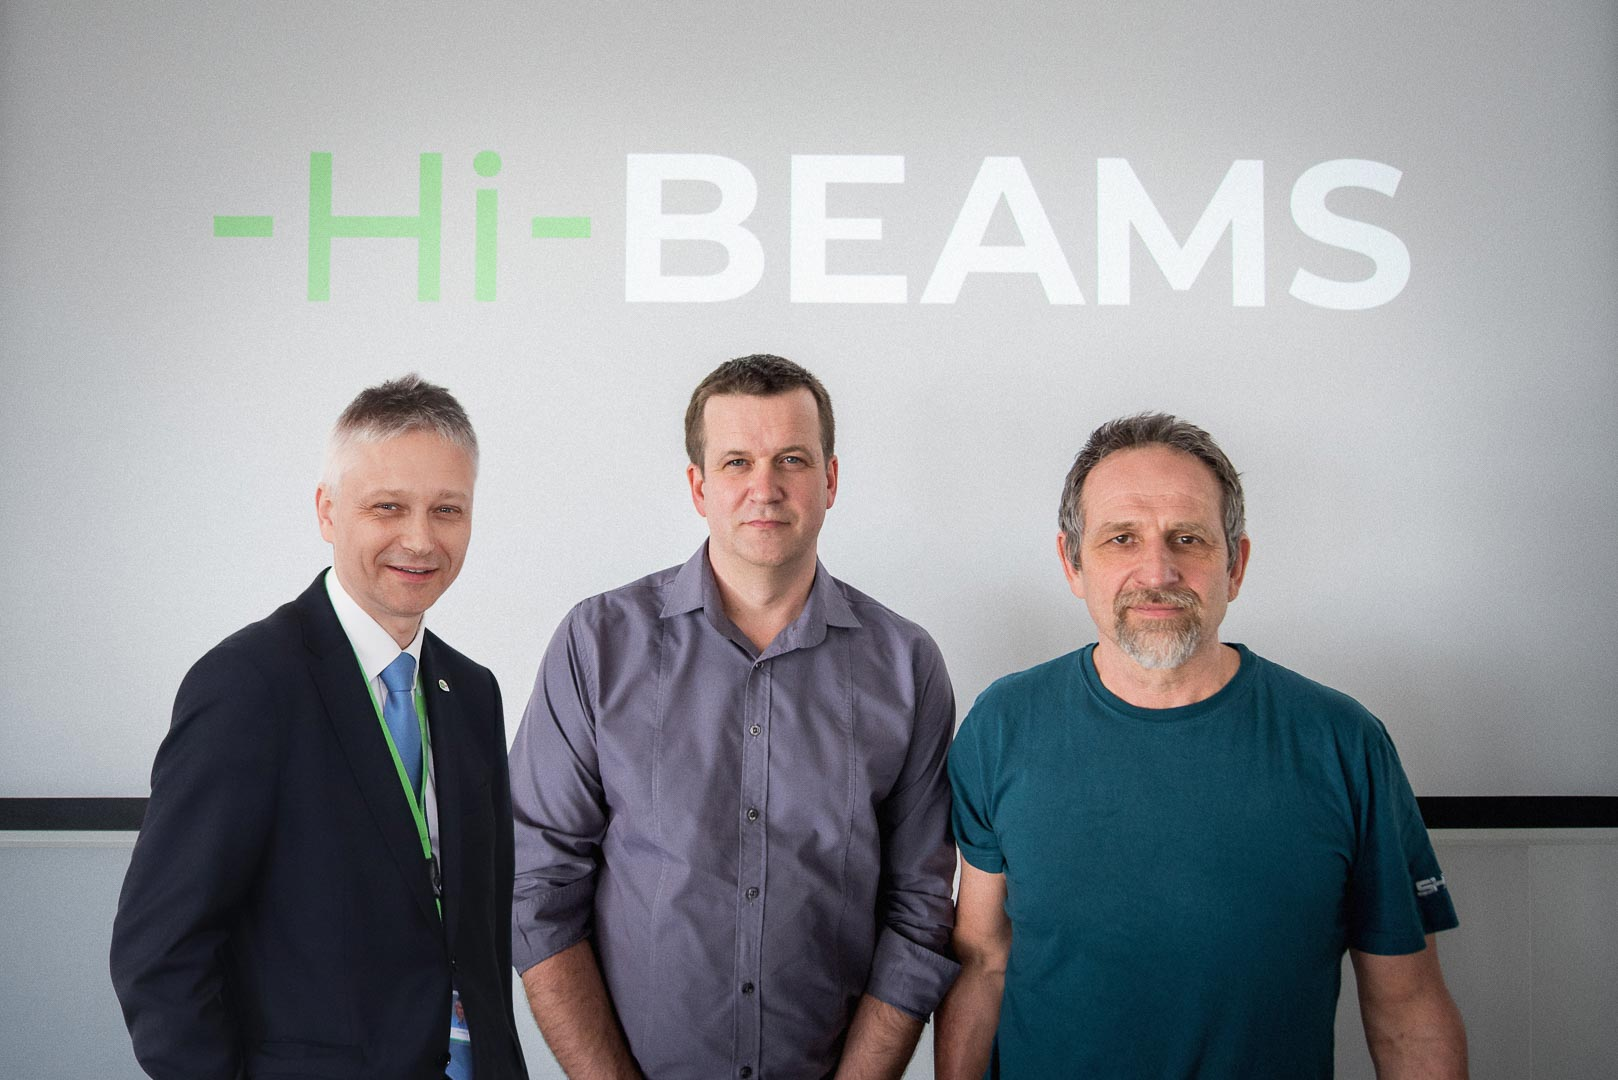 Hi-Beams